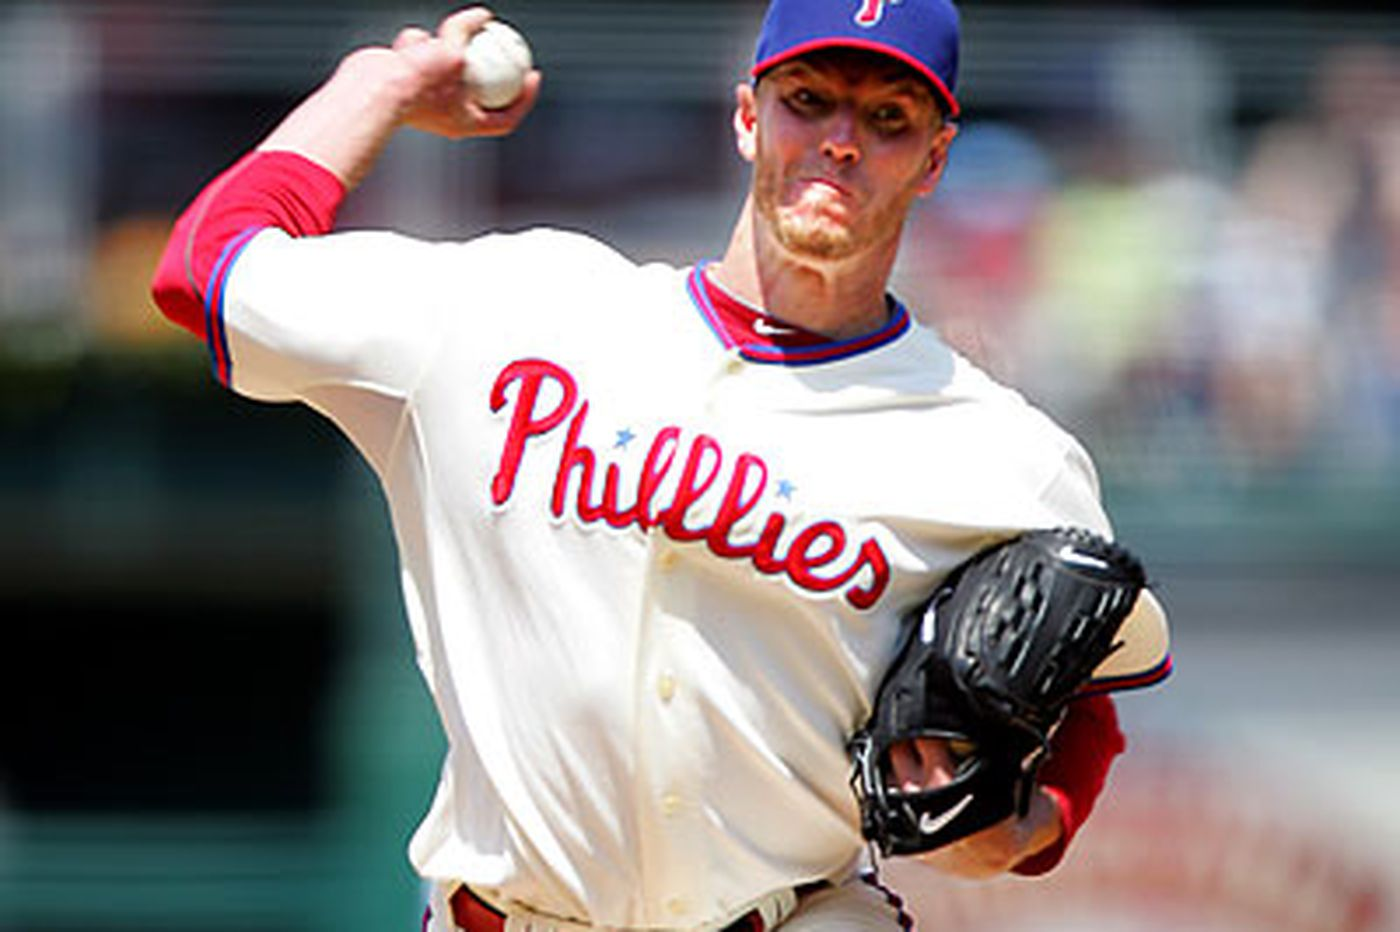 Phillies ace Halladay has another weapon this season